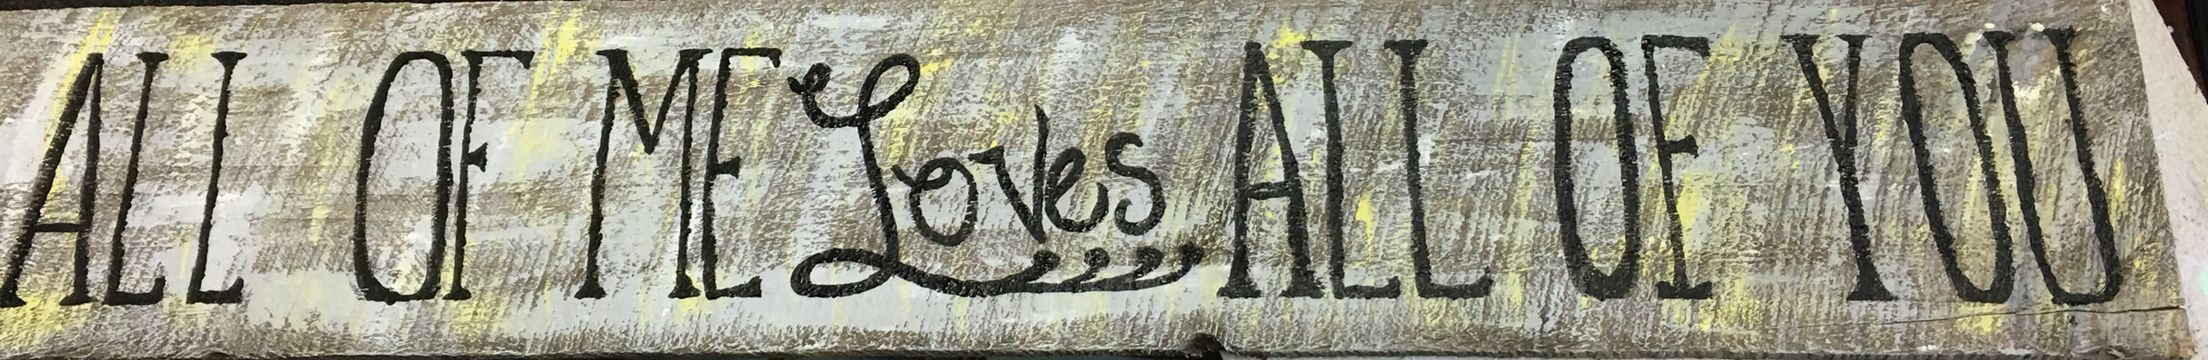 Wooden sign.  All of me loves all of you